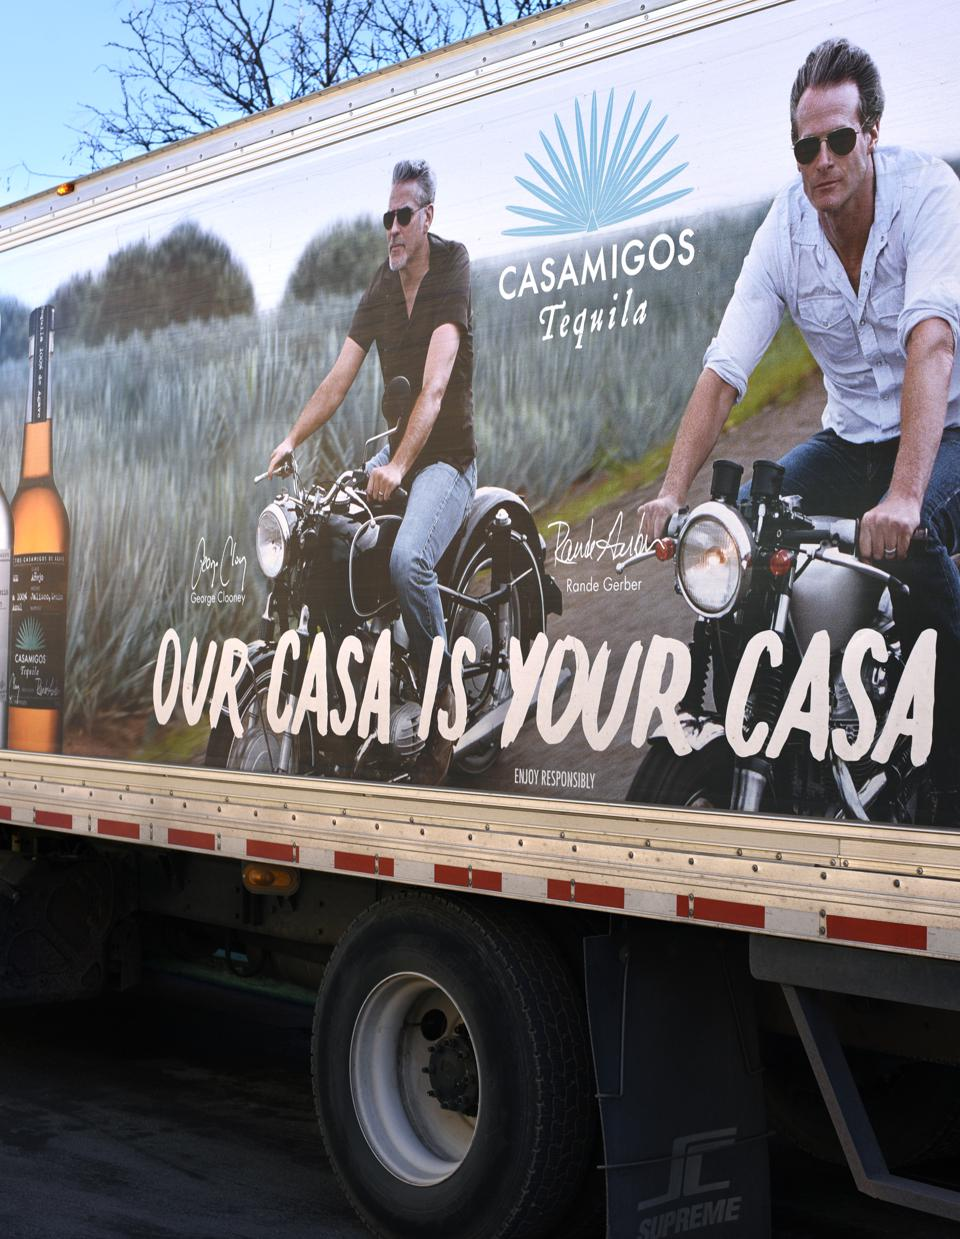 Casamigos tequila delivery truck